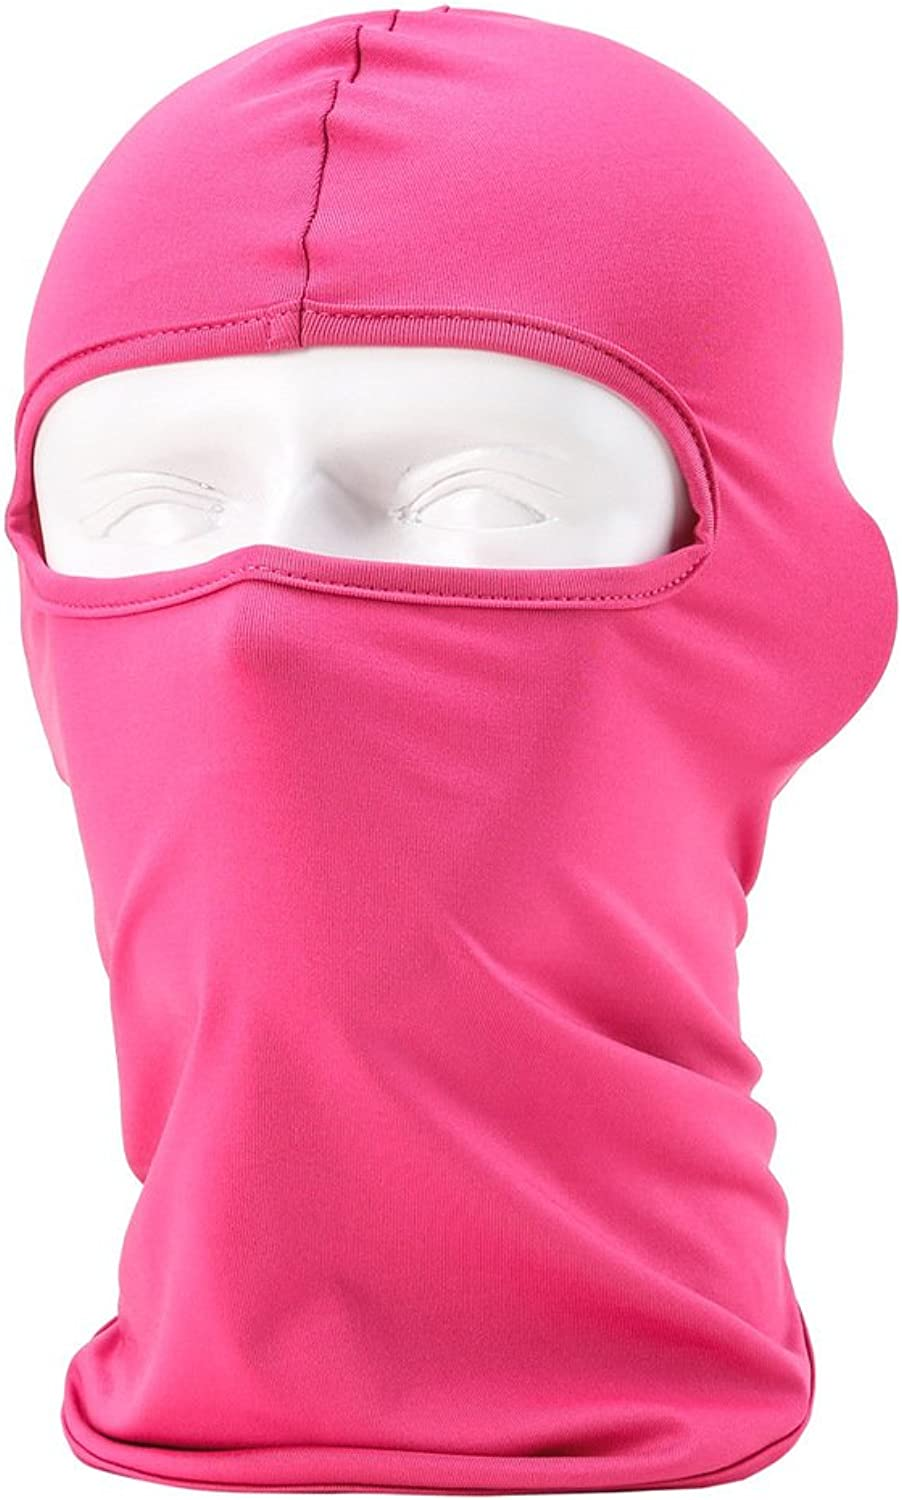 Maoko Motorcycle Outdoor Sports Hood Full Balaclava Windproof Airsoft Riding Face Mask Hat pink